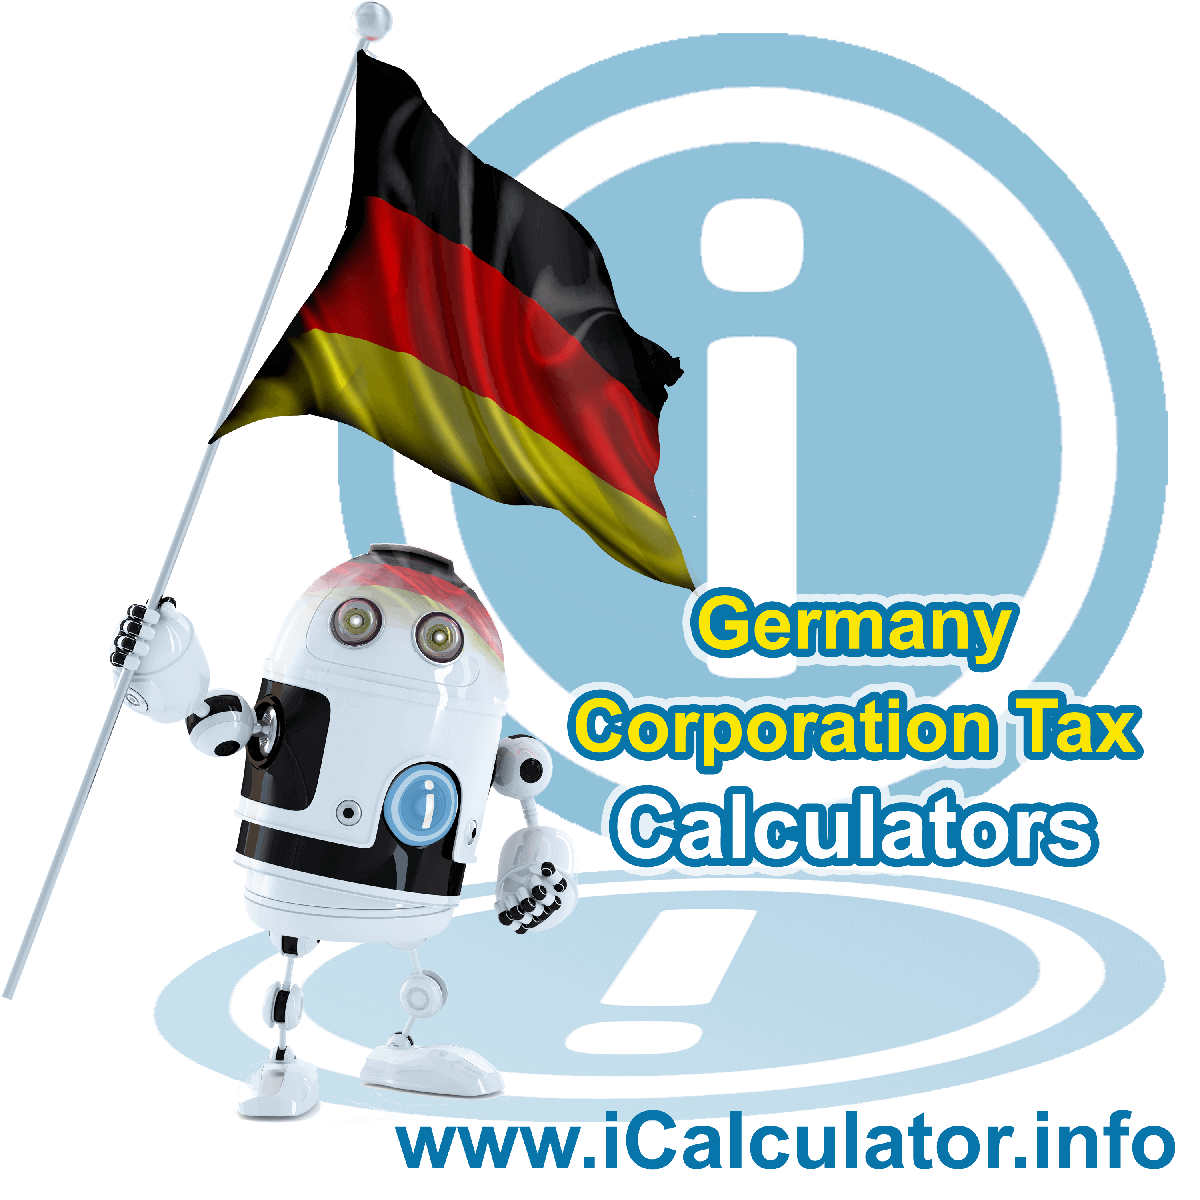 Germany Corporation Tax Calculator. This image shows the Germany flag and information relating to the corporation tax rate formula used for calculating Corporation Tax in Germany using the Germany Corporation Tax Calculator in 2020